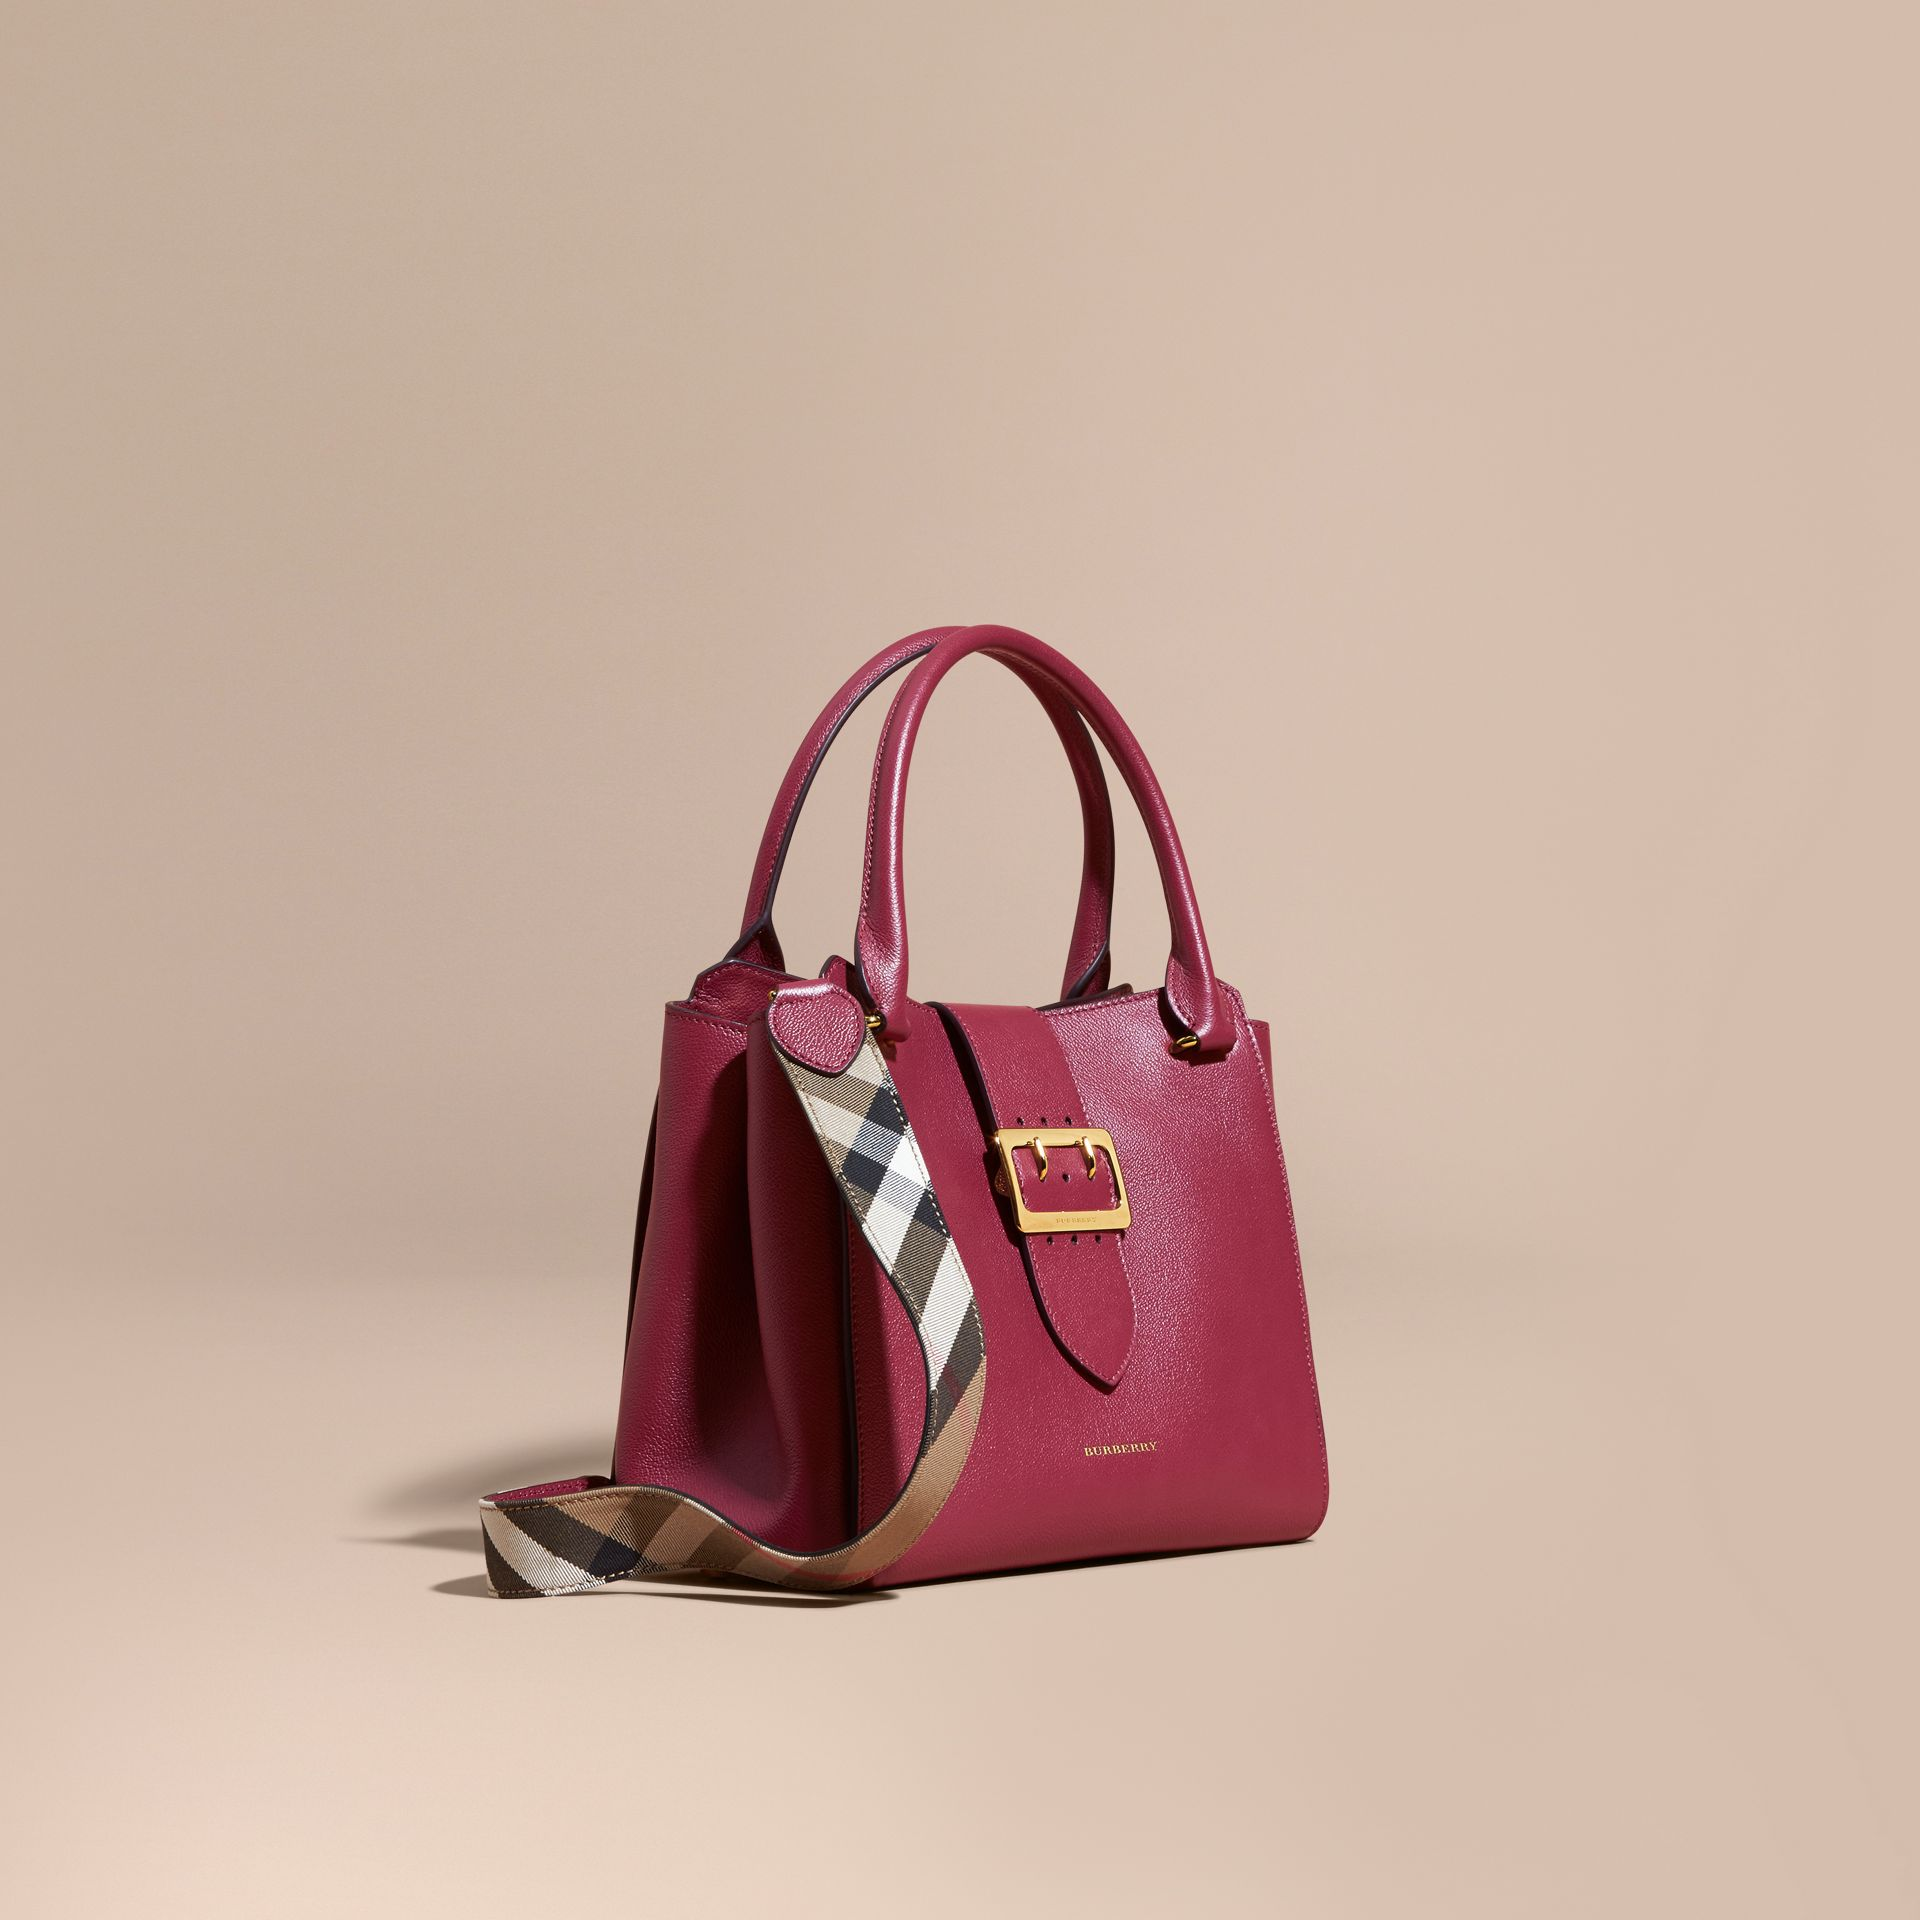 Dark plum The Medium Buckle Tote in Grainy Leather Dark Plum - gallery image 1